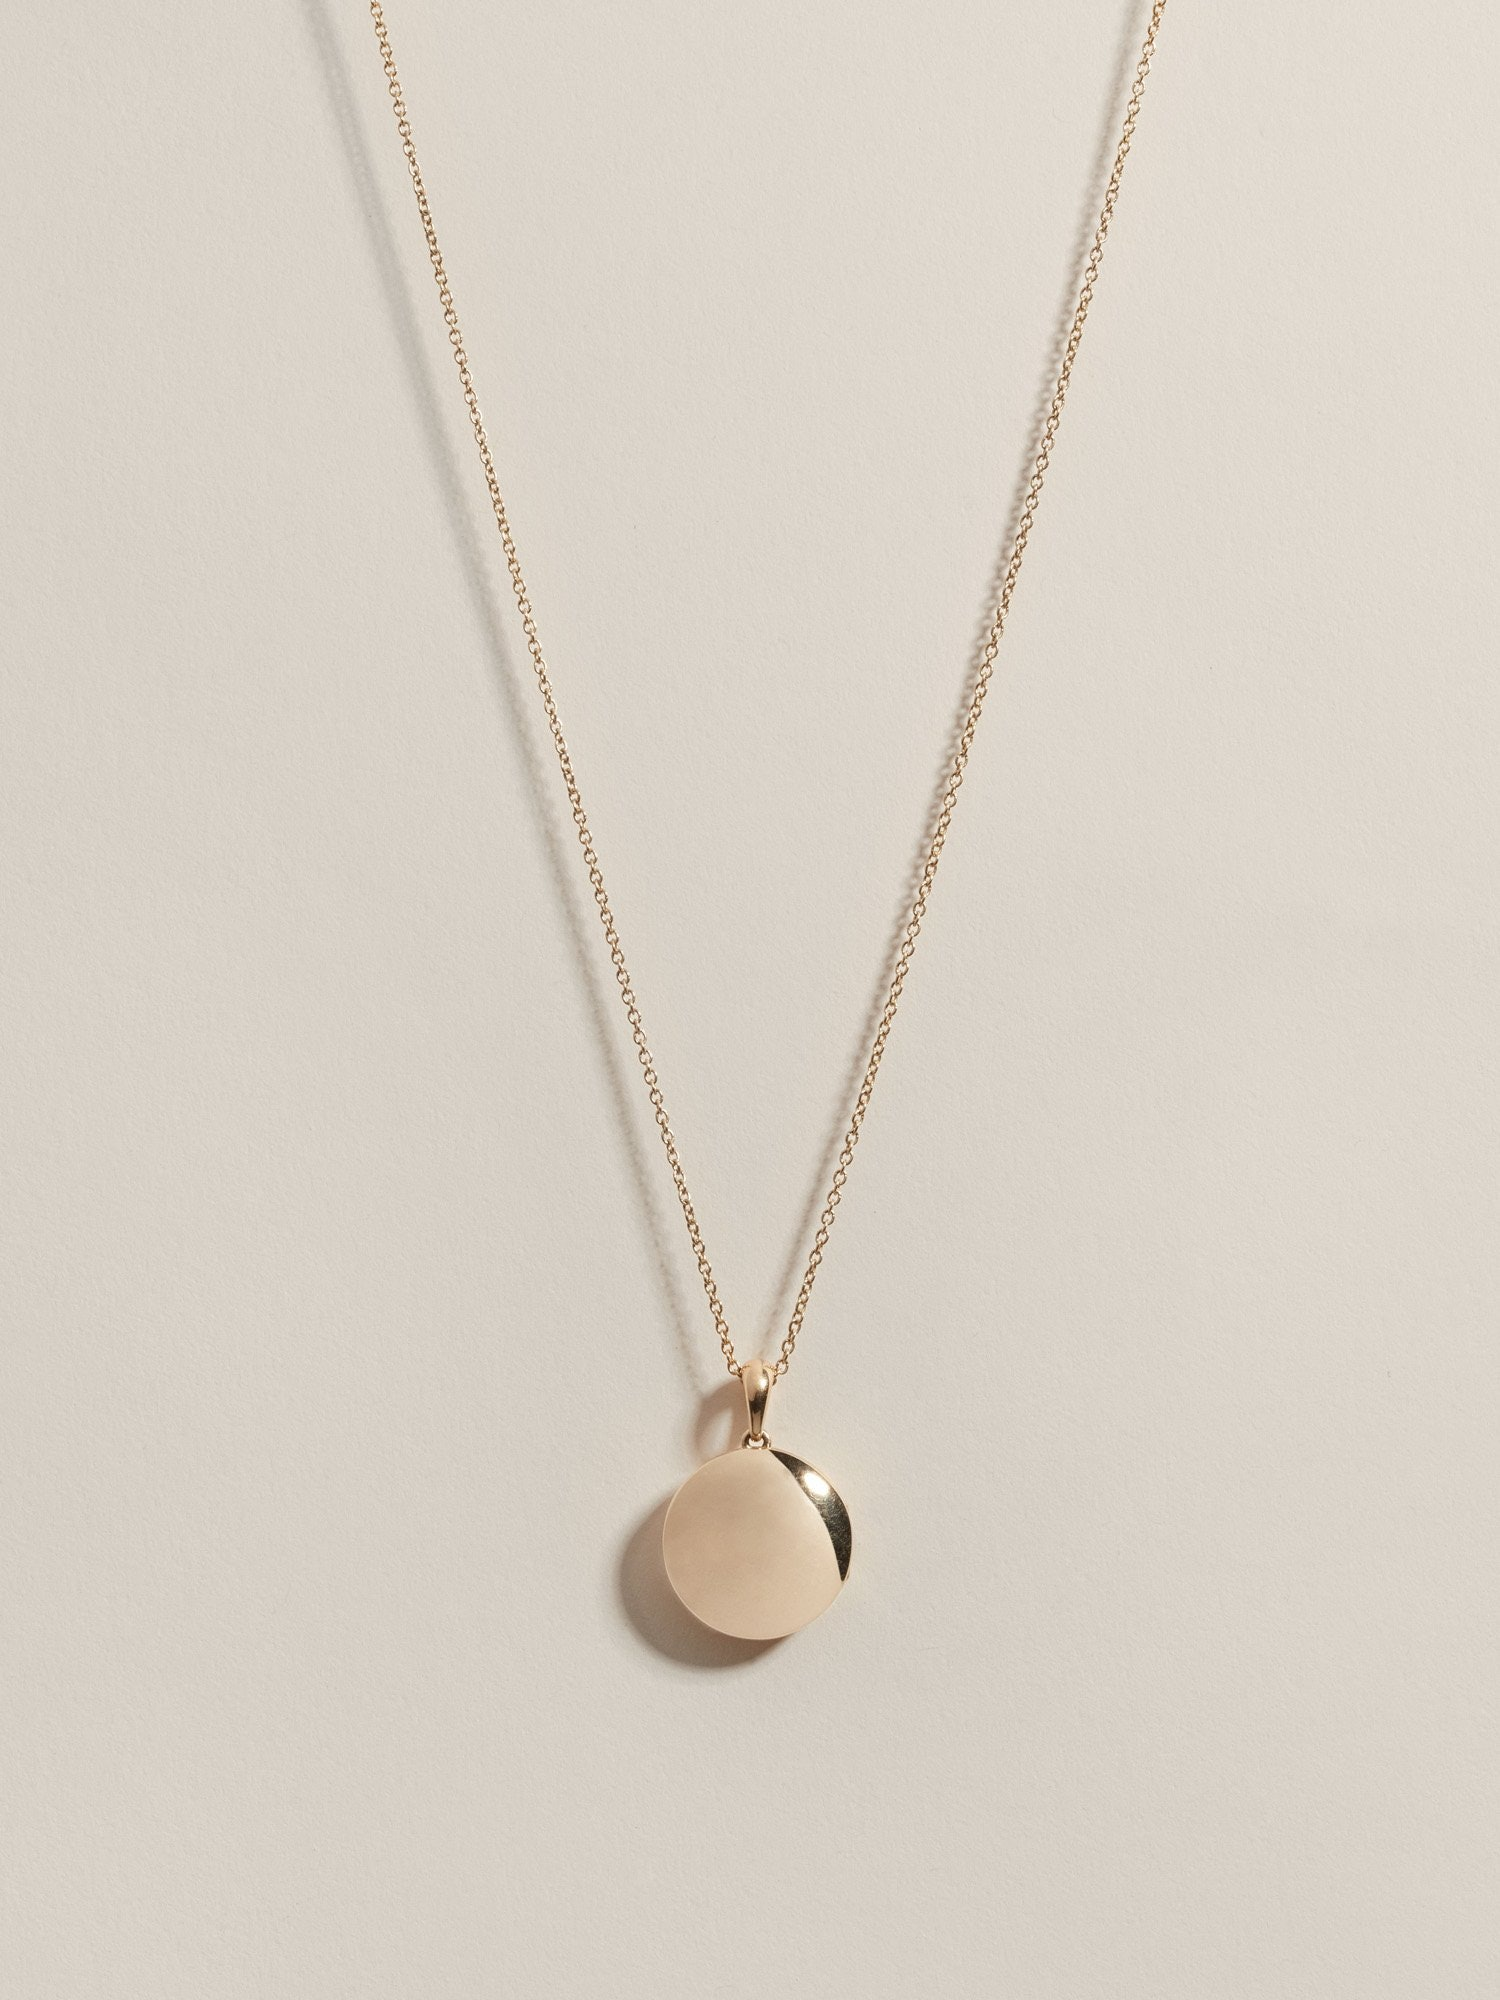 4b54bf463bcde 17 Minimalist Jewelry Brands You Should Know In 2019